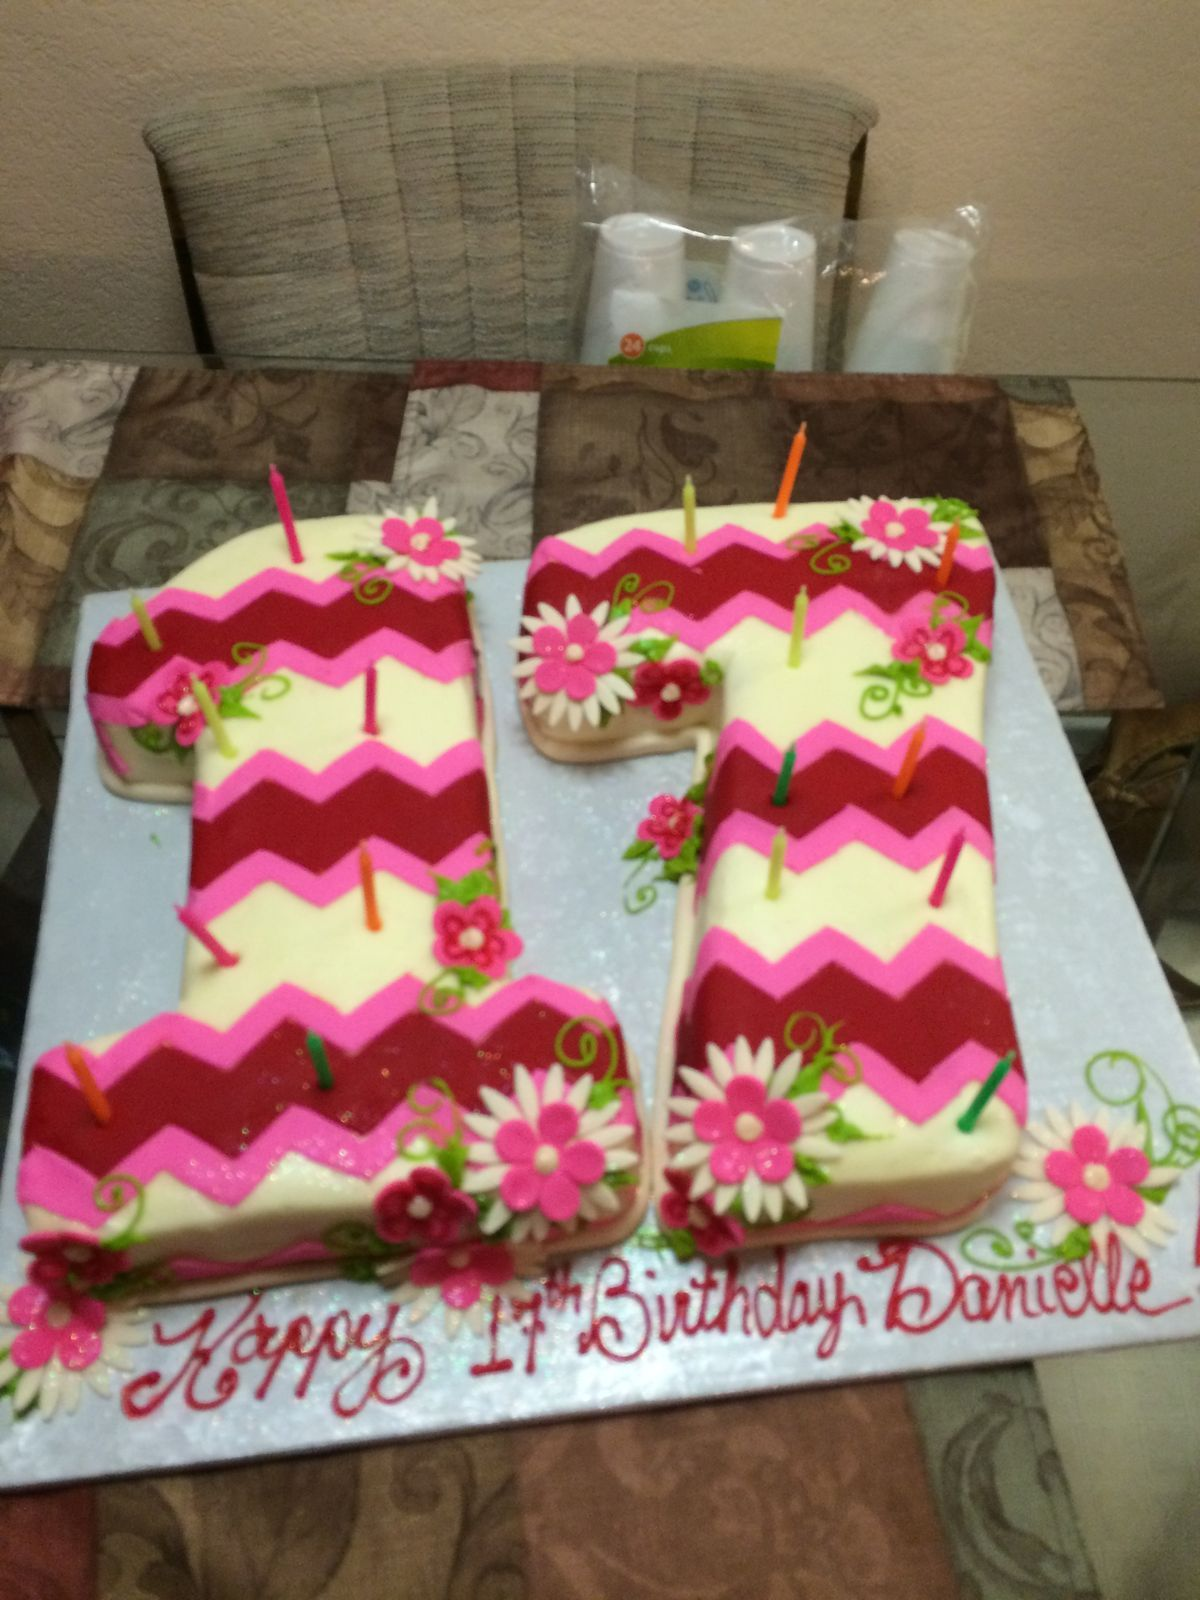 B0958c6e76818875ac9f9aba31fa63a5 1200x1600 Pixels 17 Birthday Cake 17th Ideas